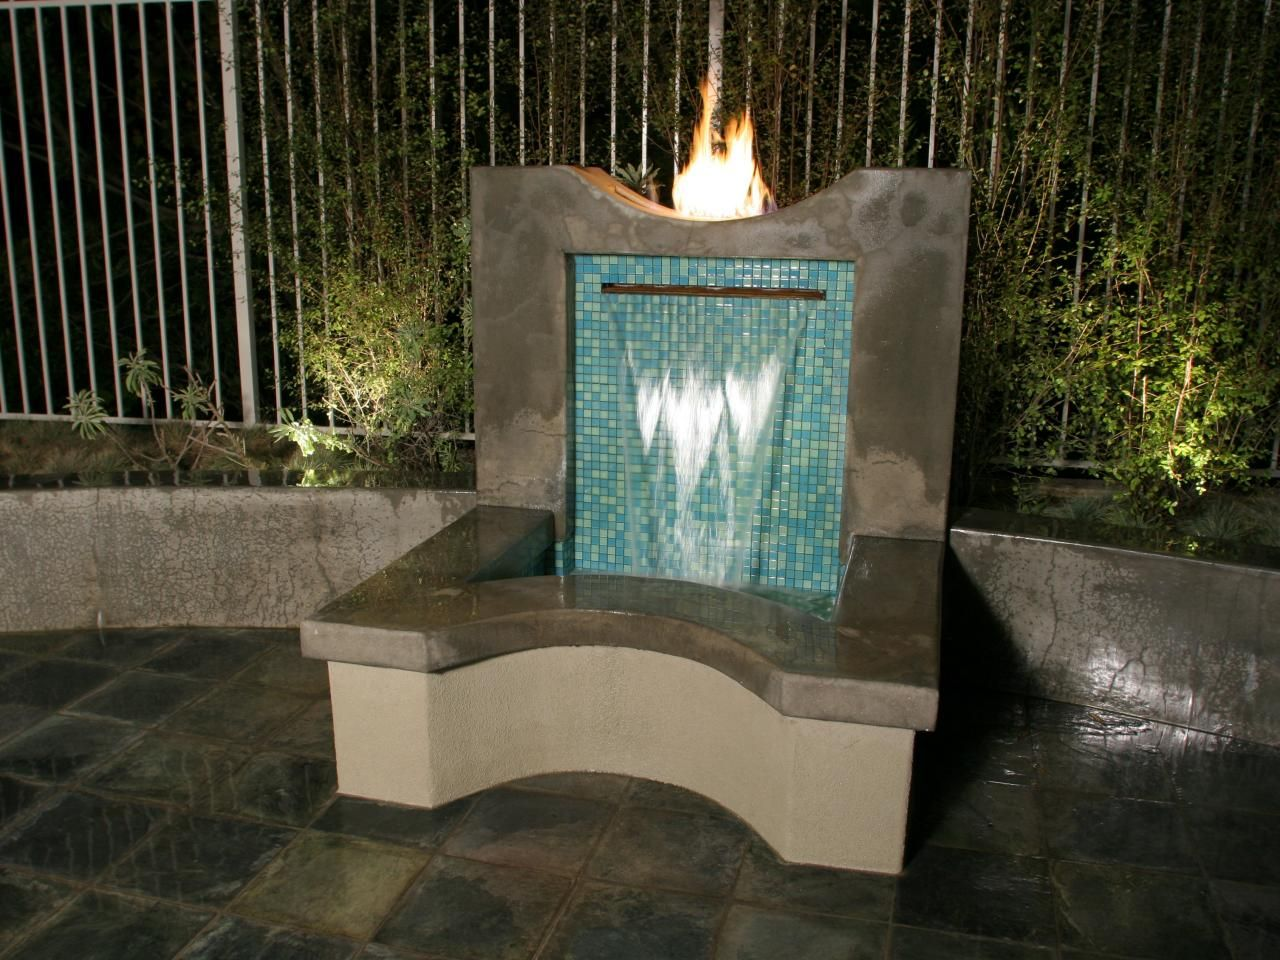 Diy water feature wall - The Mosaic Glass Tiles On The Back Wall Of The Water Feature Pop Against The